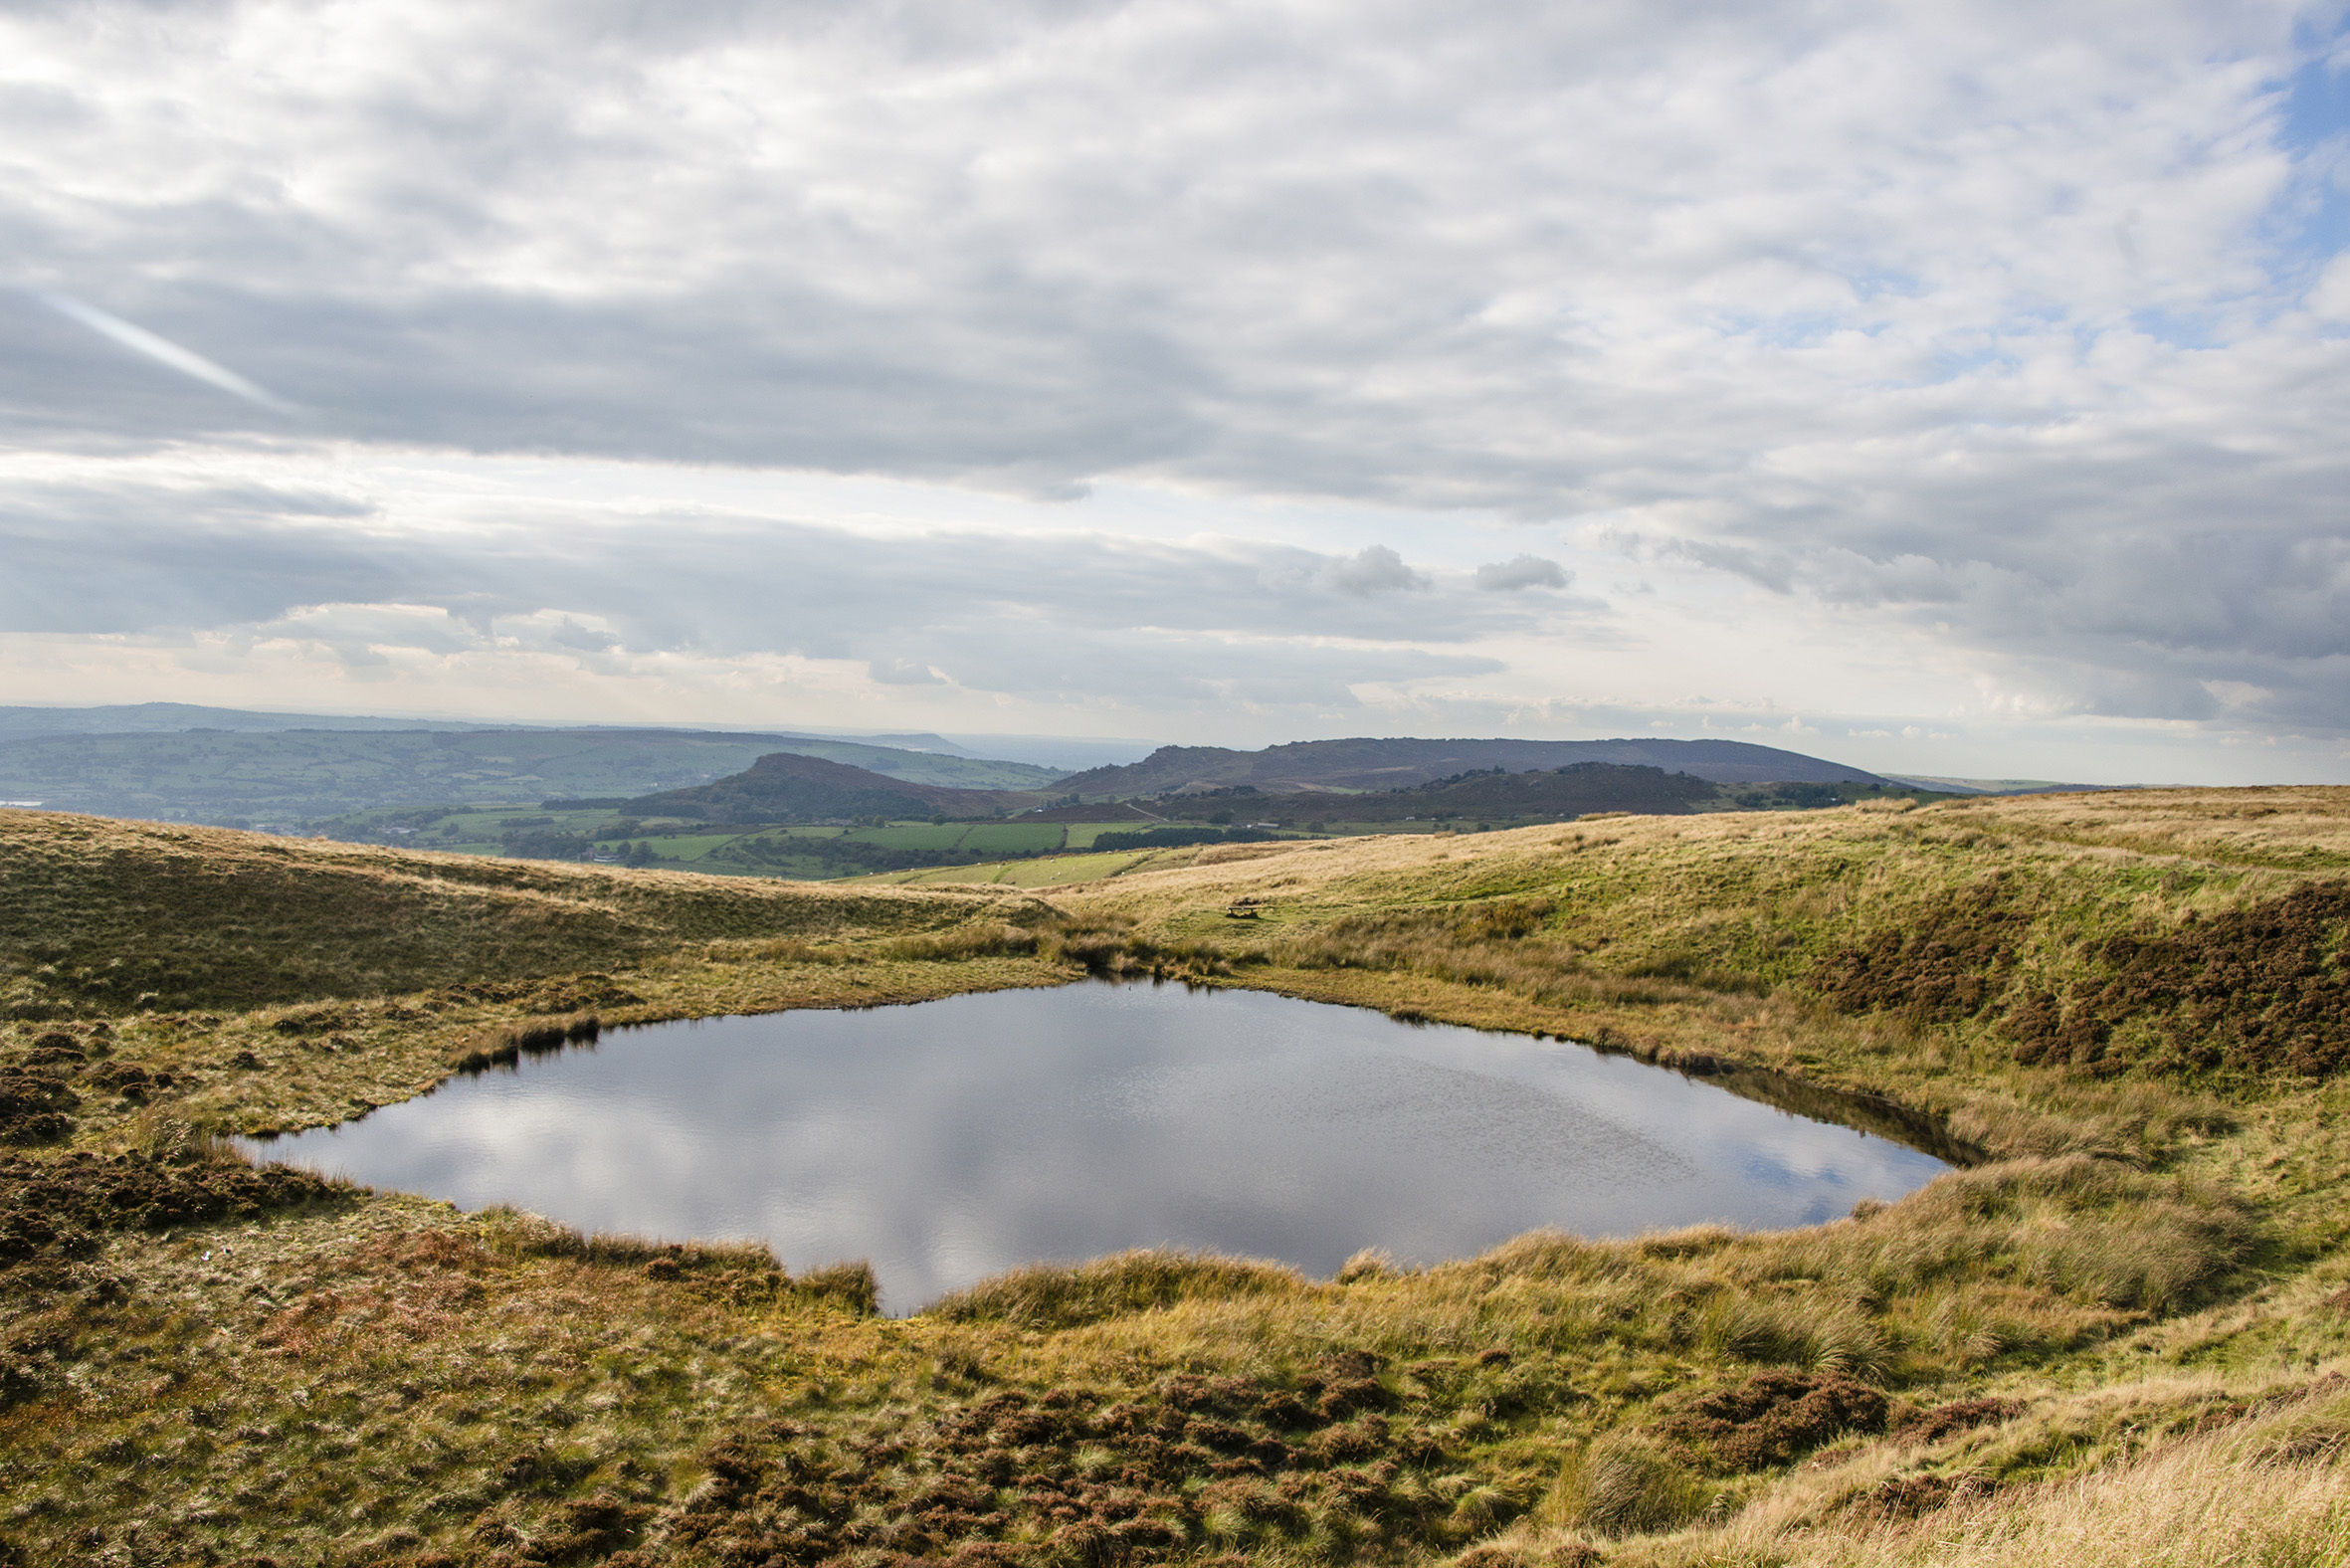 Mermaid's Pool, Peak District